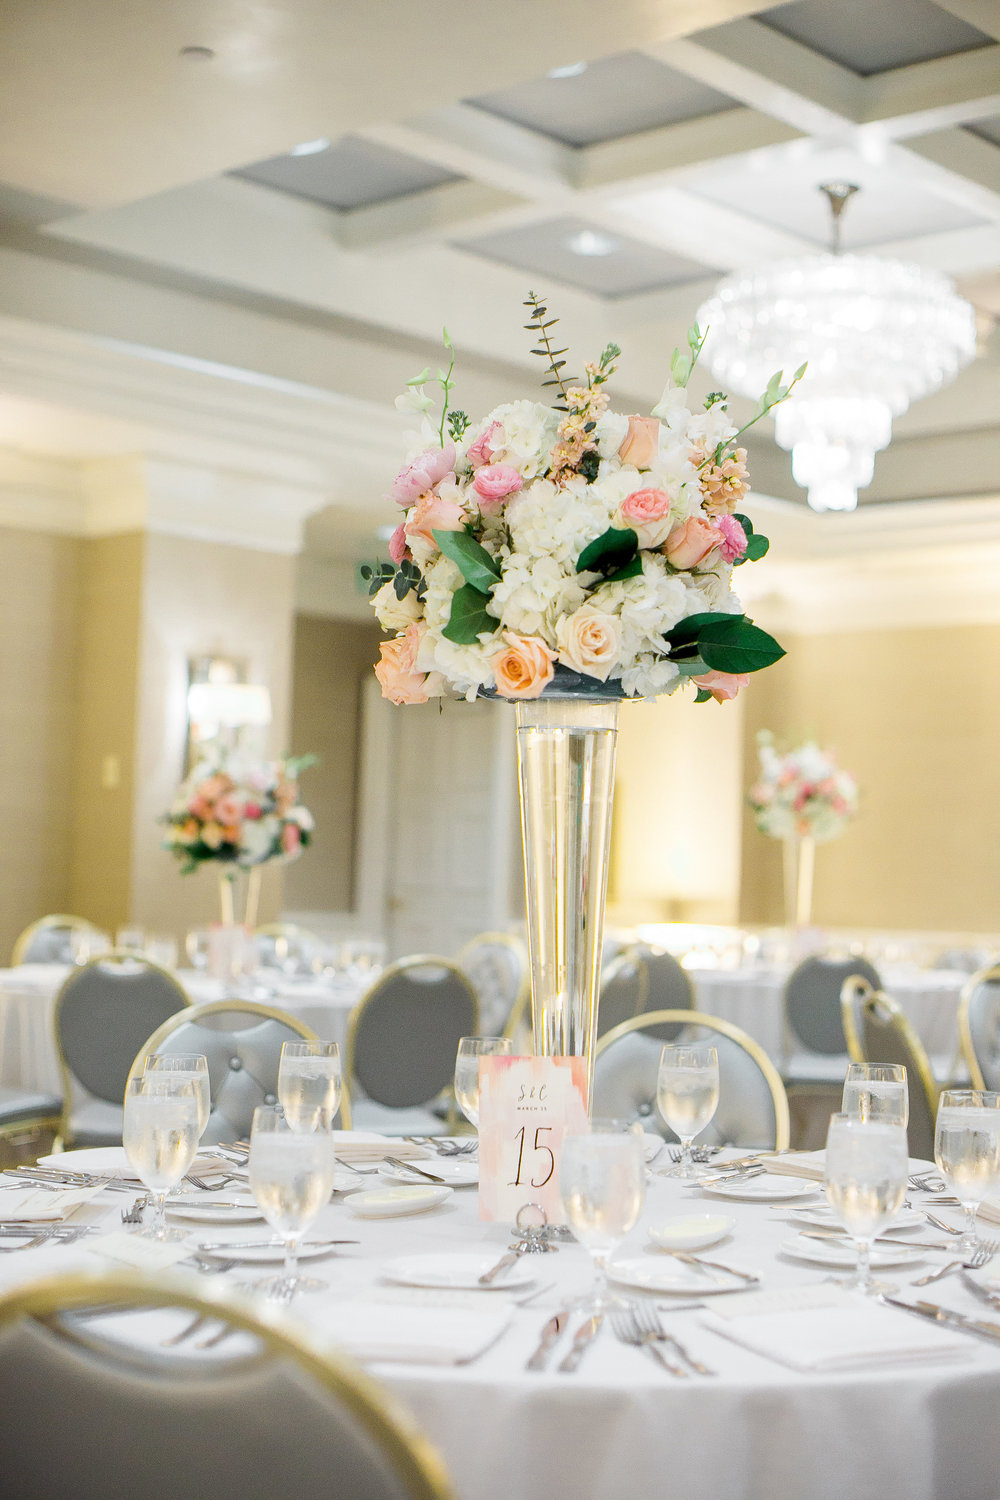 shadee and courtlan wedding with cluster events high flowers.jpg